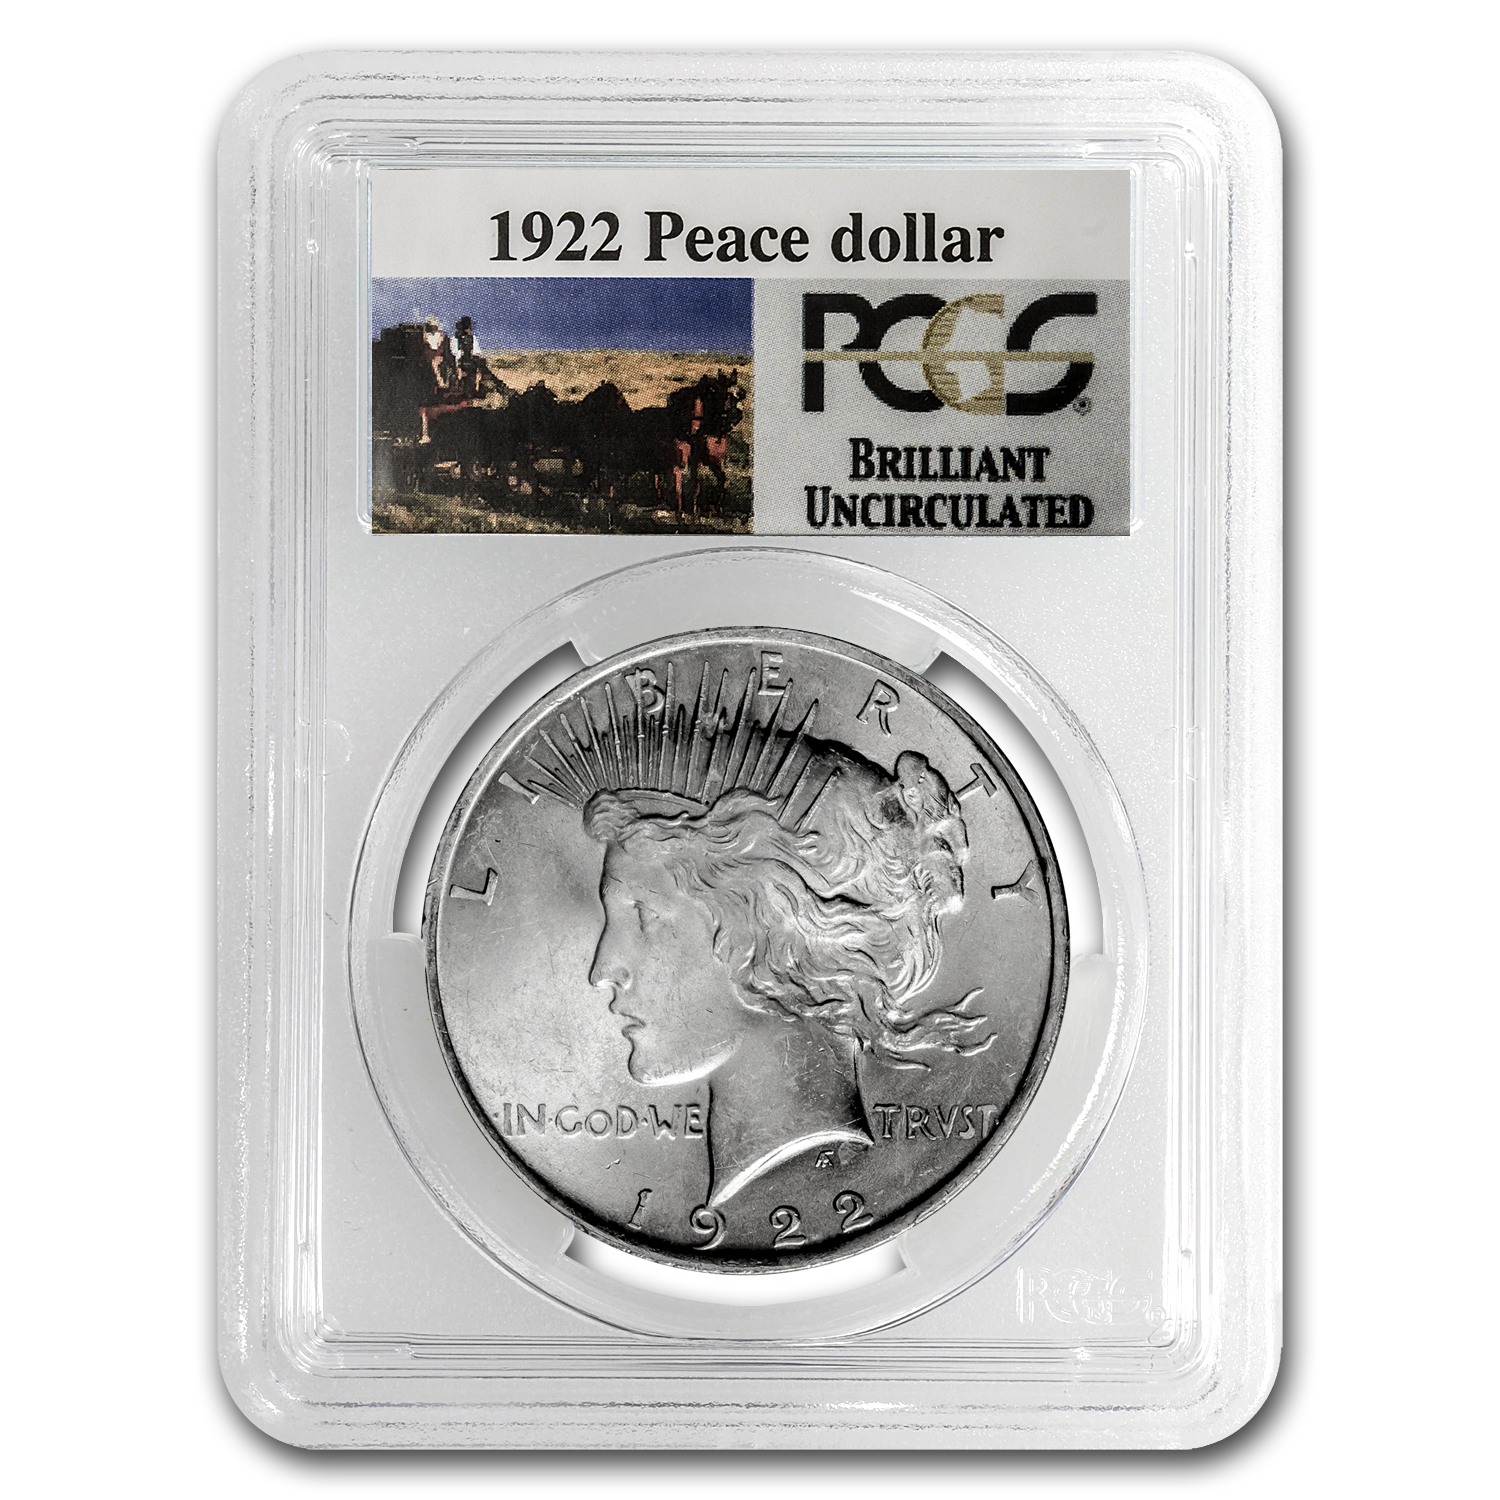 1922 Brilliant Uncirculated PCGS Stage Coach Silver Dollars